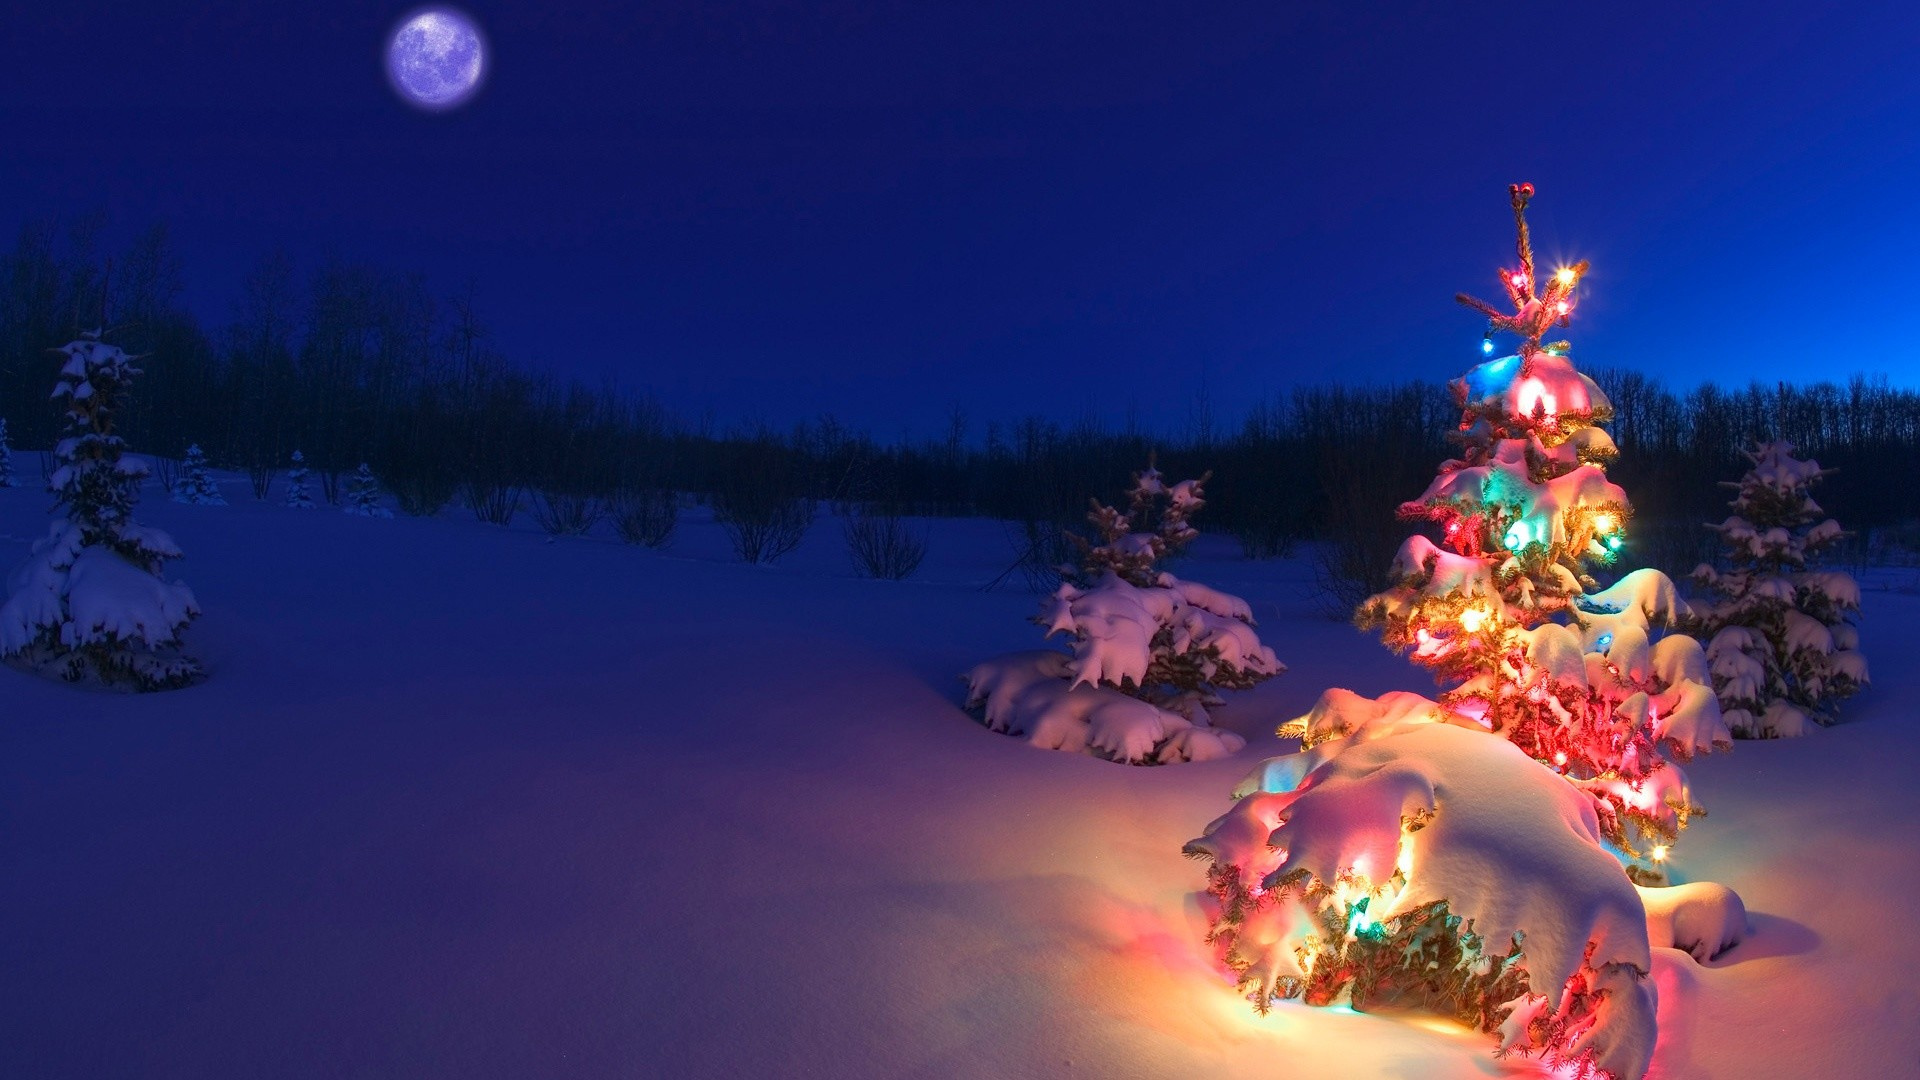 Merry Christmas Images Hd.Christmas Hd Wallpaper 76 Images